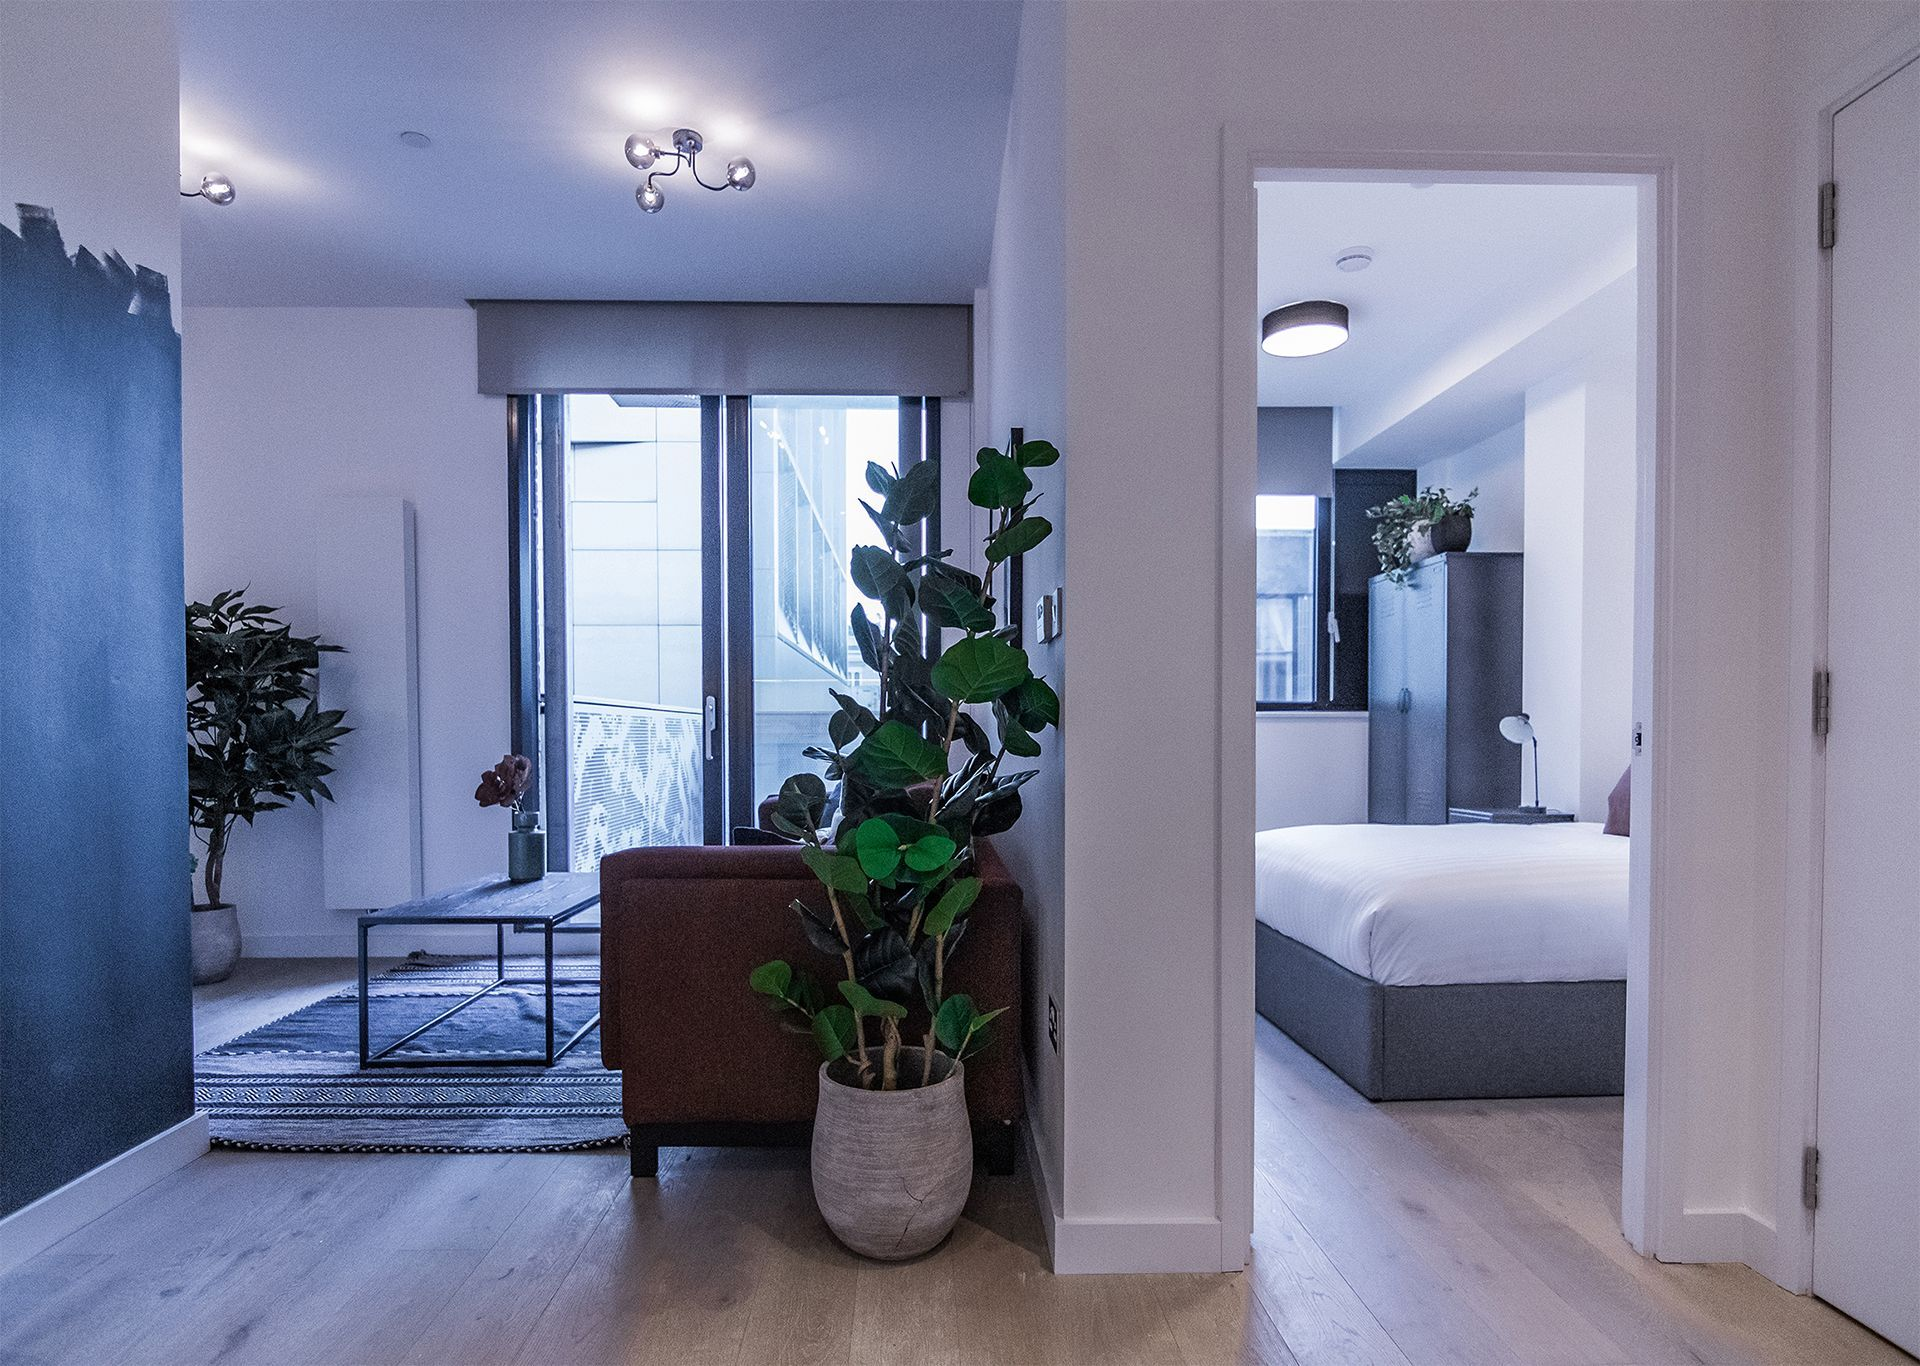 1 Bedroom apartment to rent in London HIL-HH-0309